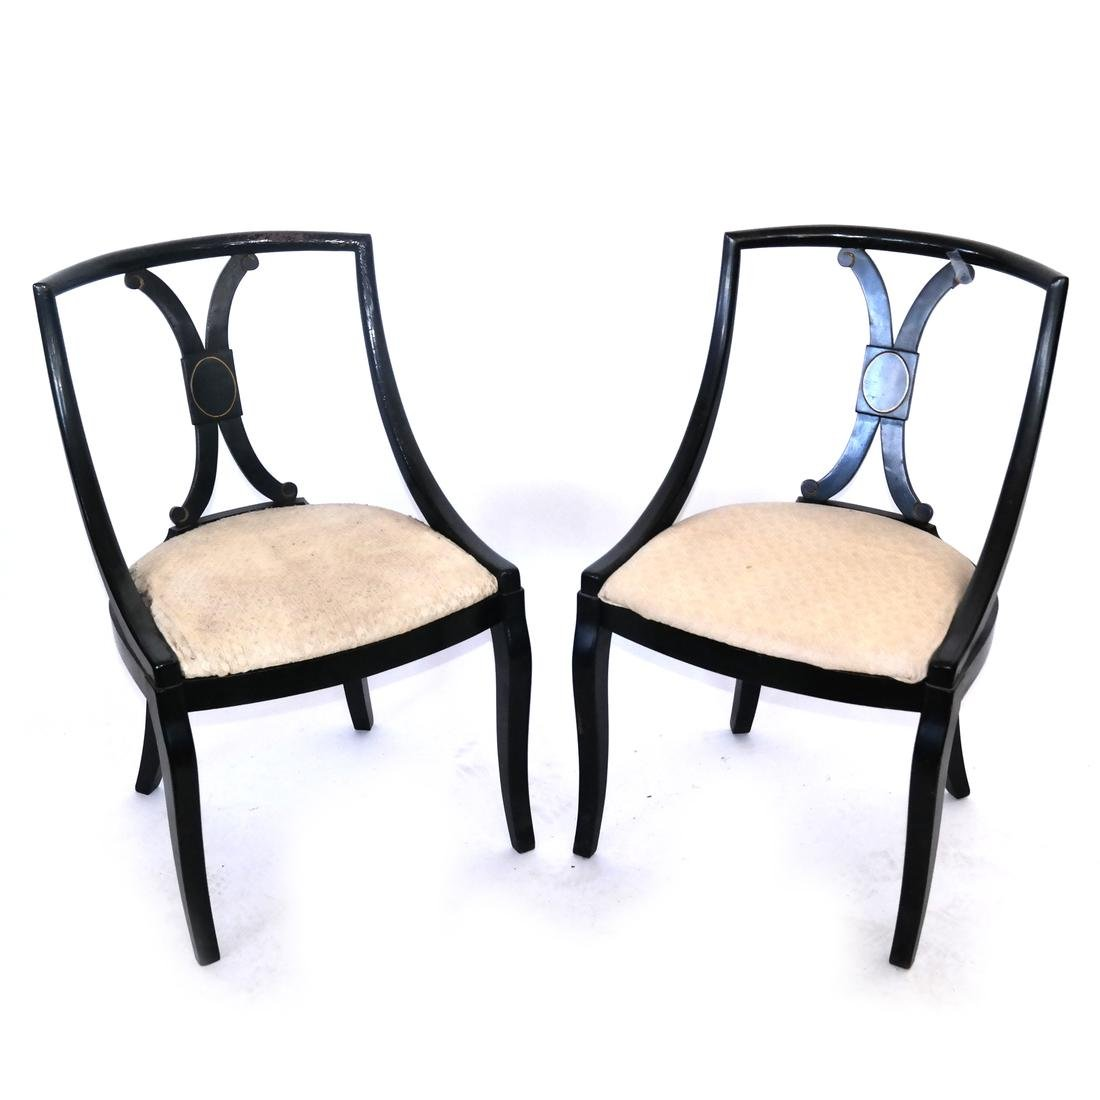 Pair of Regency-Style Black Chairs